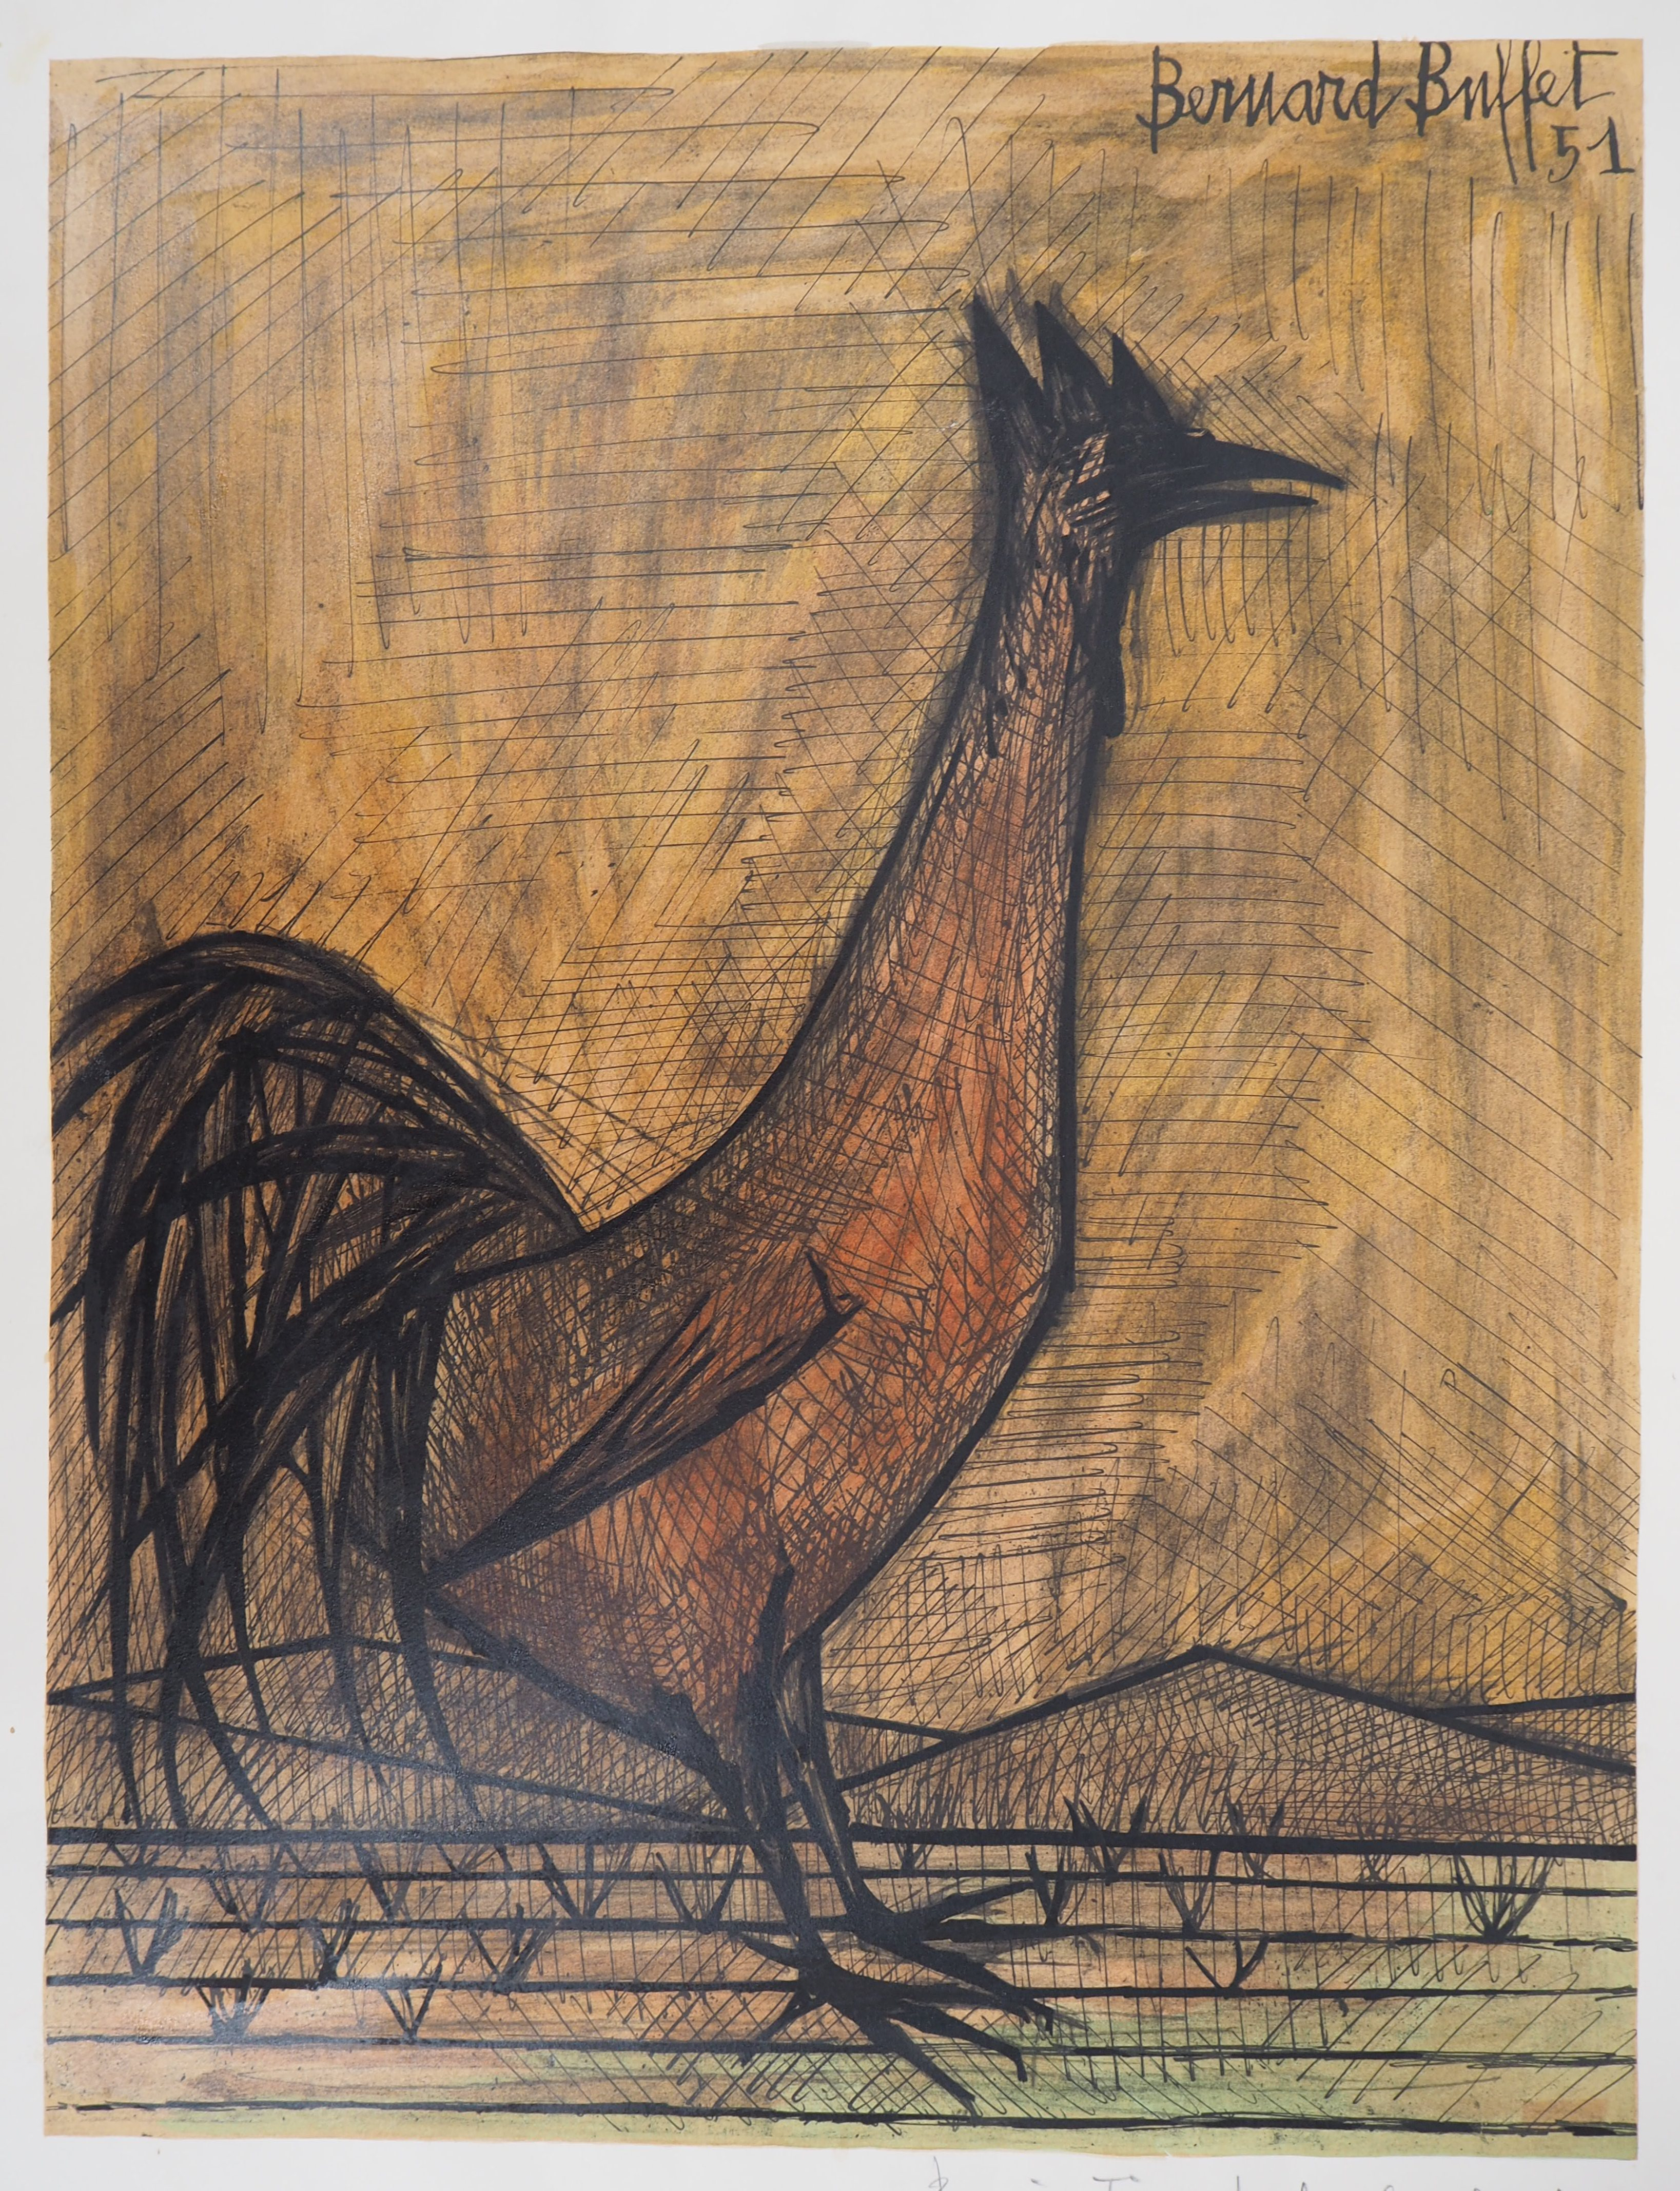 Groovy Bernard Buffet The Rooster 1960 Lithograph Signed In Home Interior And Landscaping Palasignezvosmurscom